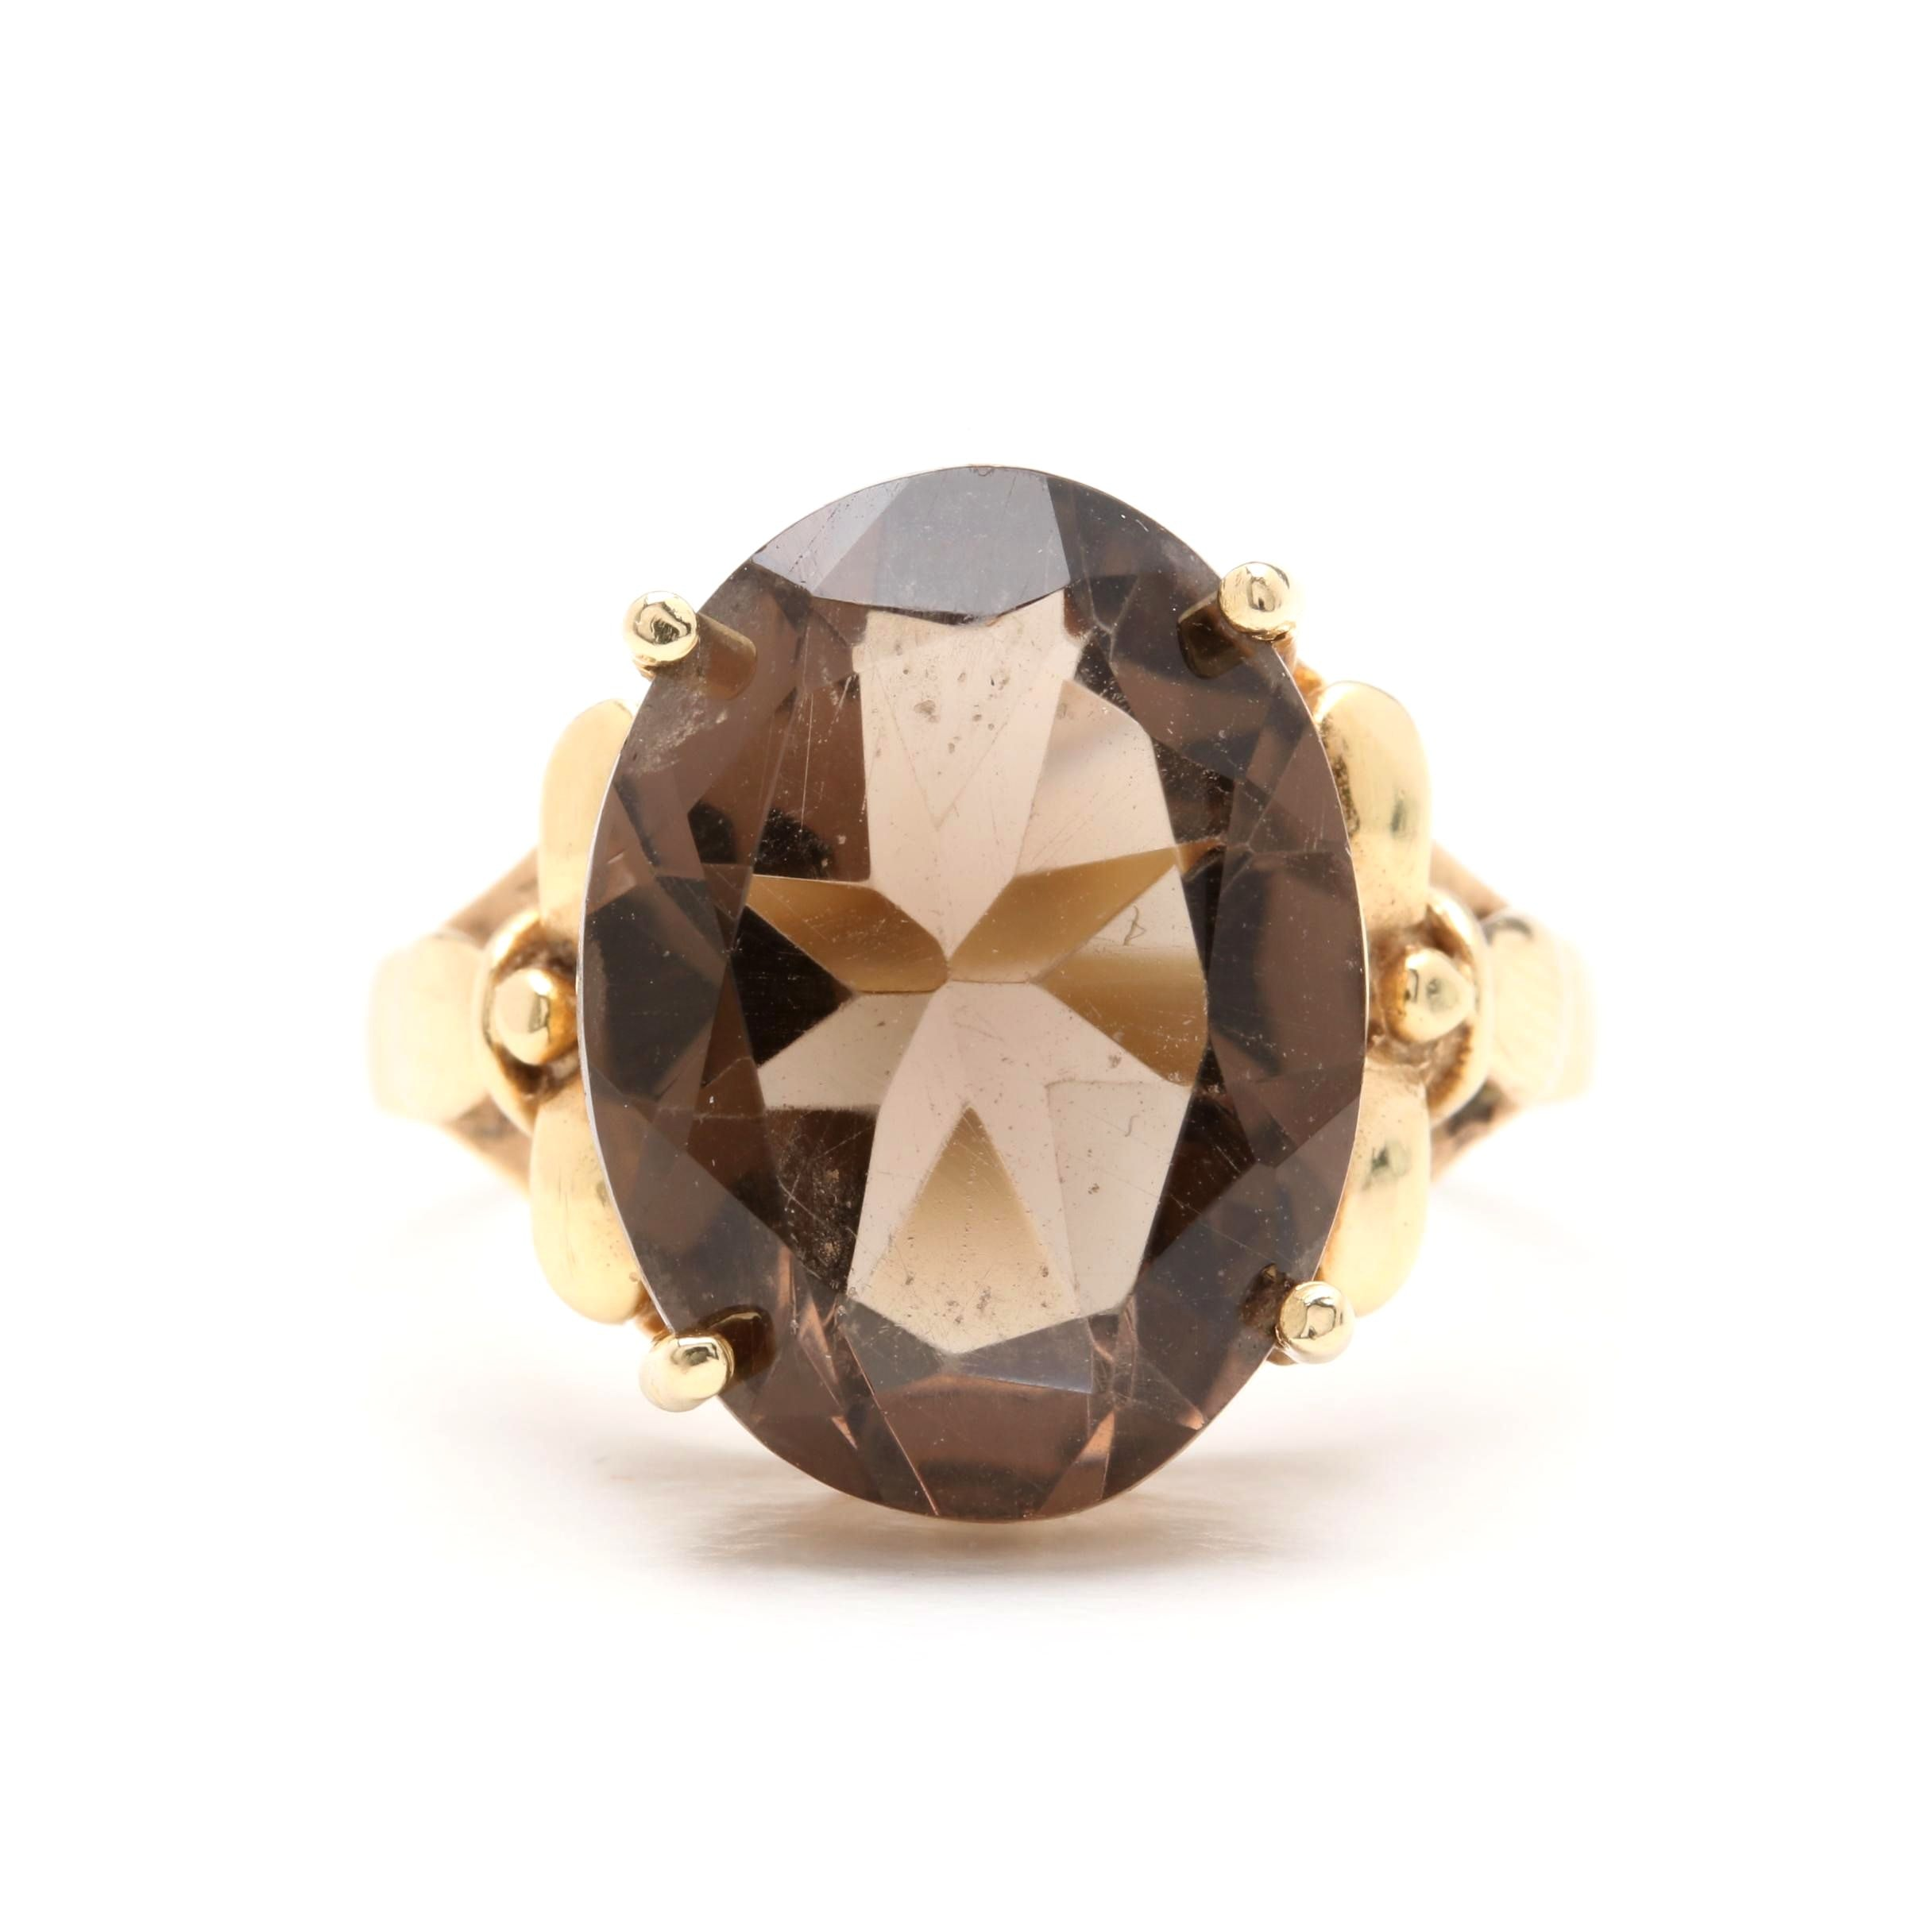 Vintage Circa 1950s 14K Yellow Gold 7.60 CT Smoky Quartz Ring